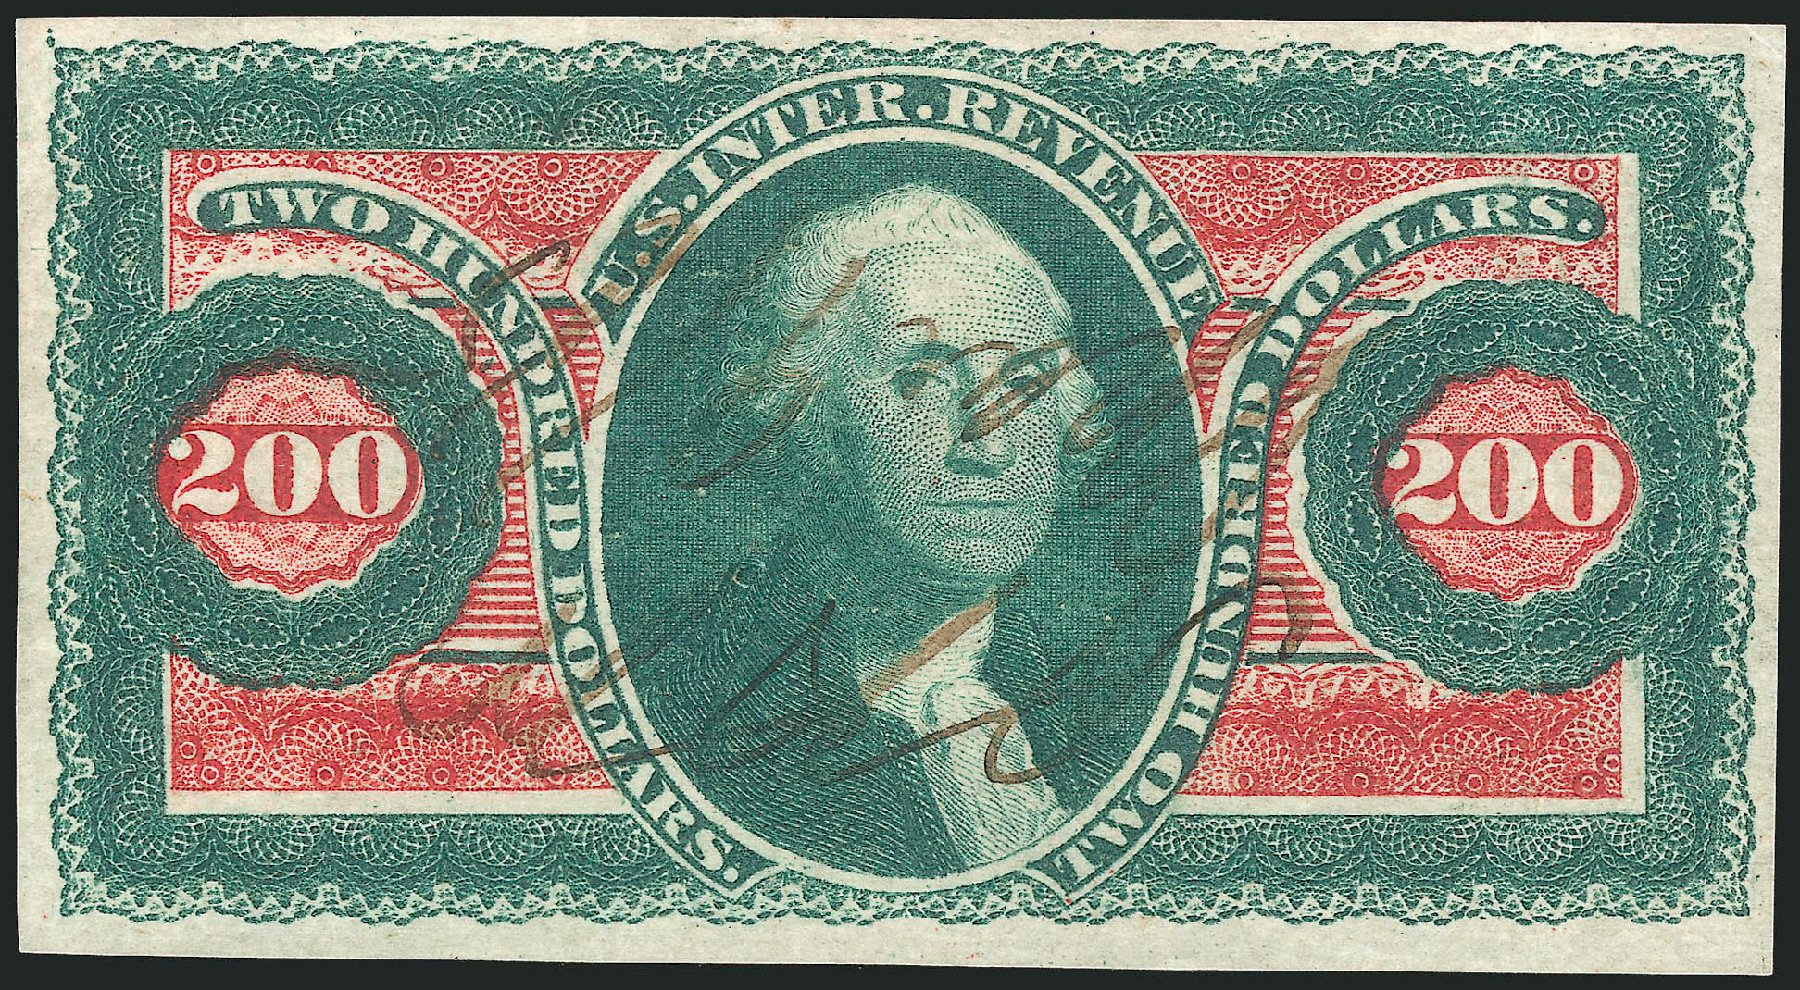 US Stamp Price Scott Catalog R102: 1863 US$200.00 Revenue Internal. Robert Siegel Auction Galleries, Jun 2015, Sale 1100, Lot 172